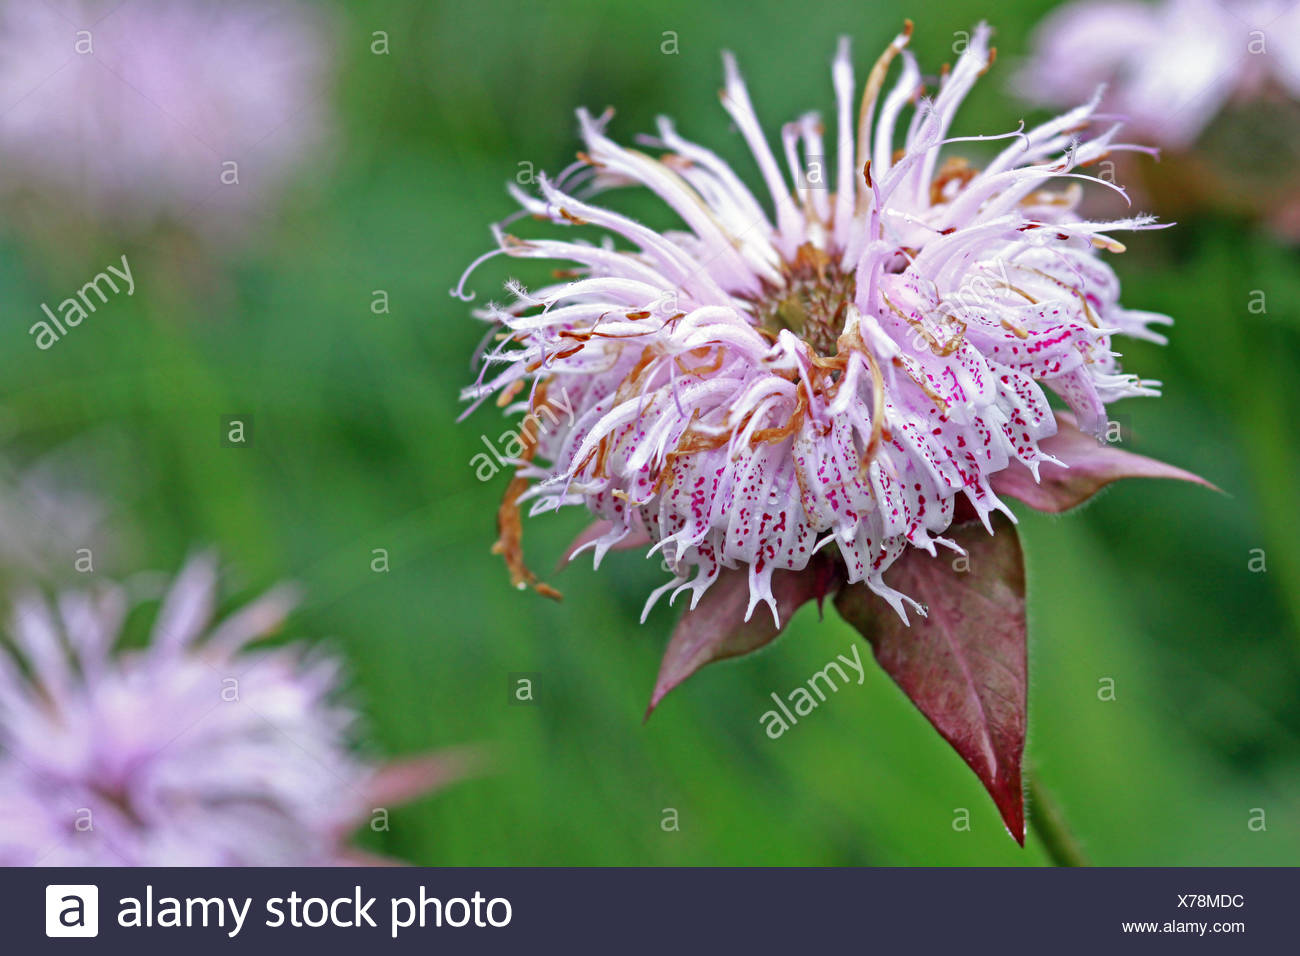 macro, close-up, macro admission, close up view, blossoms, spring, spotted, Stock Photo